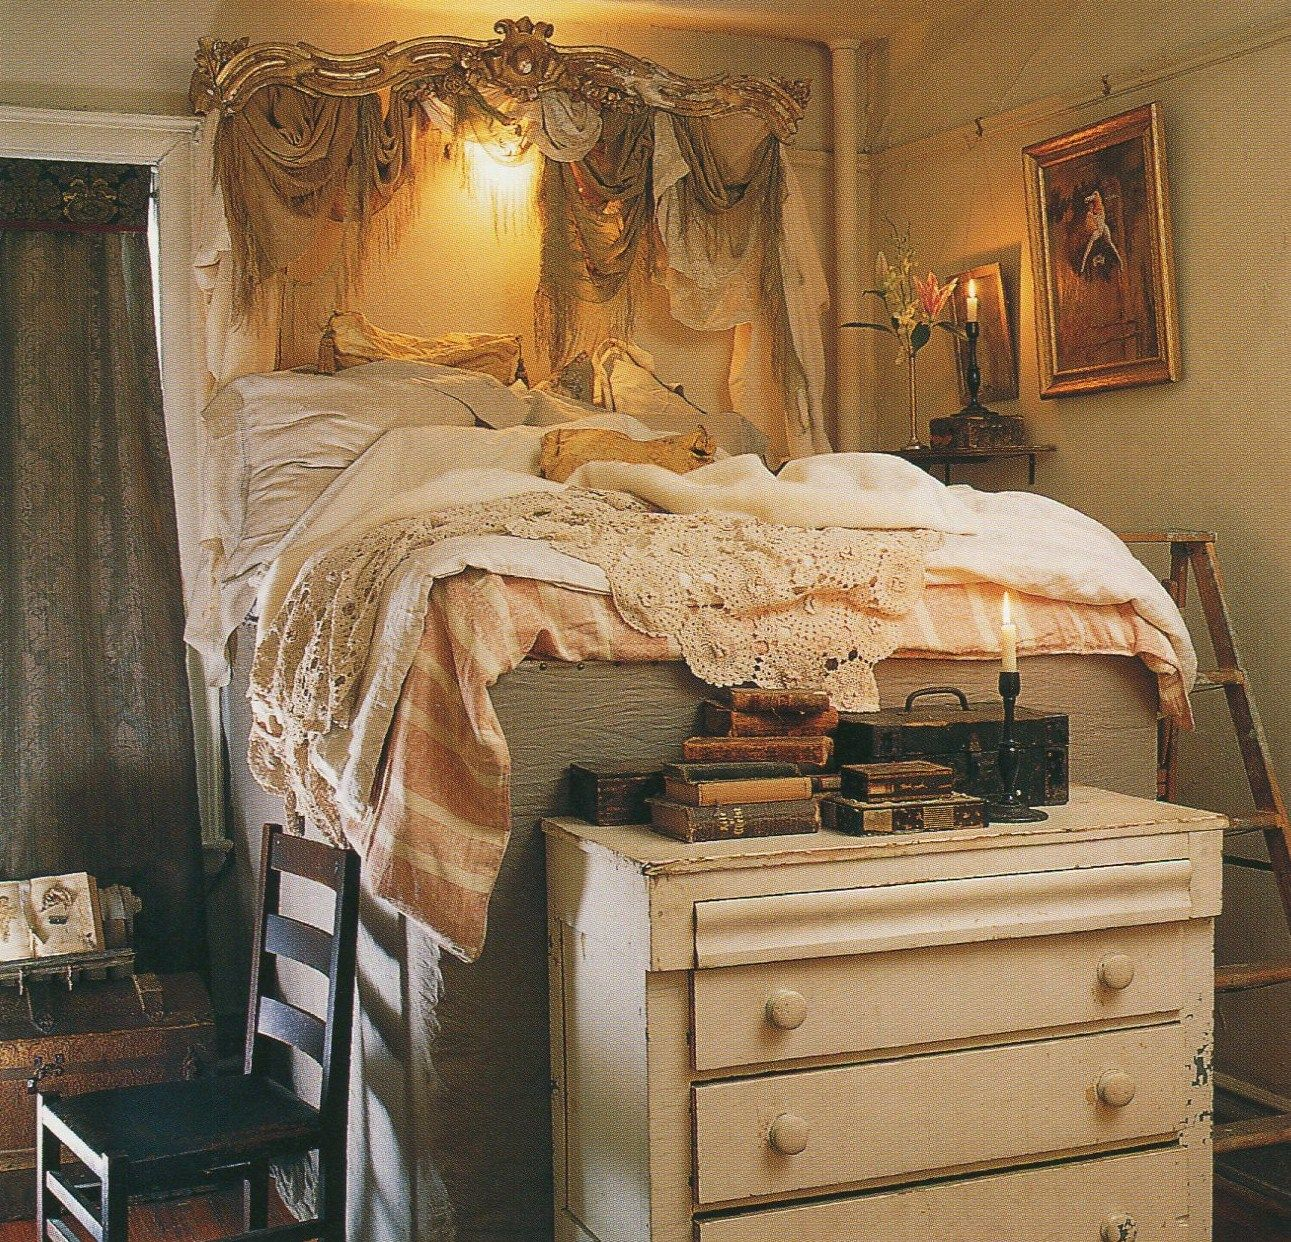 Charmant Elevated Gypsy Bed. Probably The Greatest Thing I Ever Saw. Bohemian Bedroom  Decor,